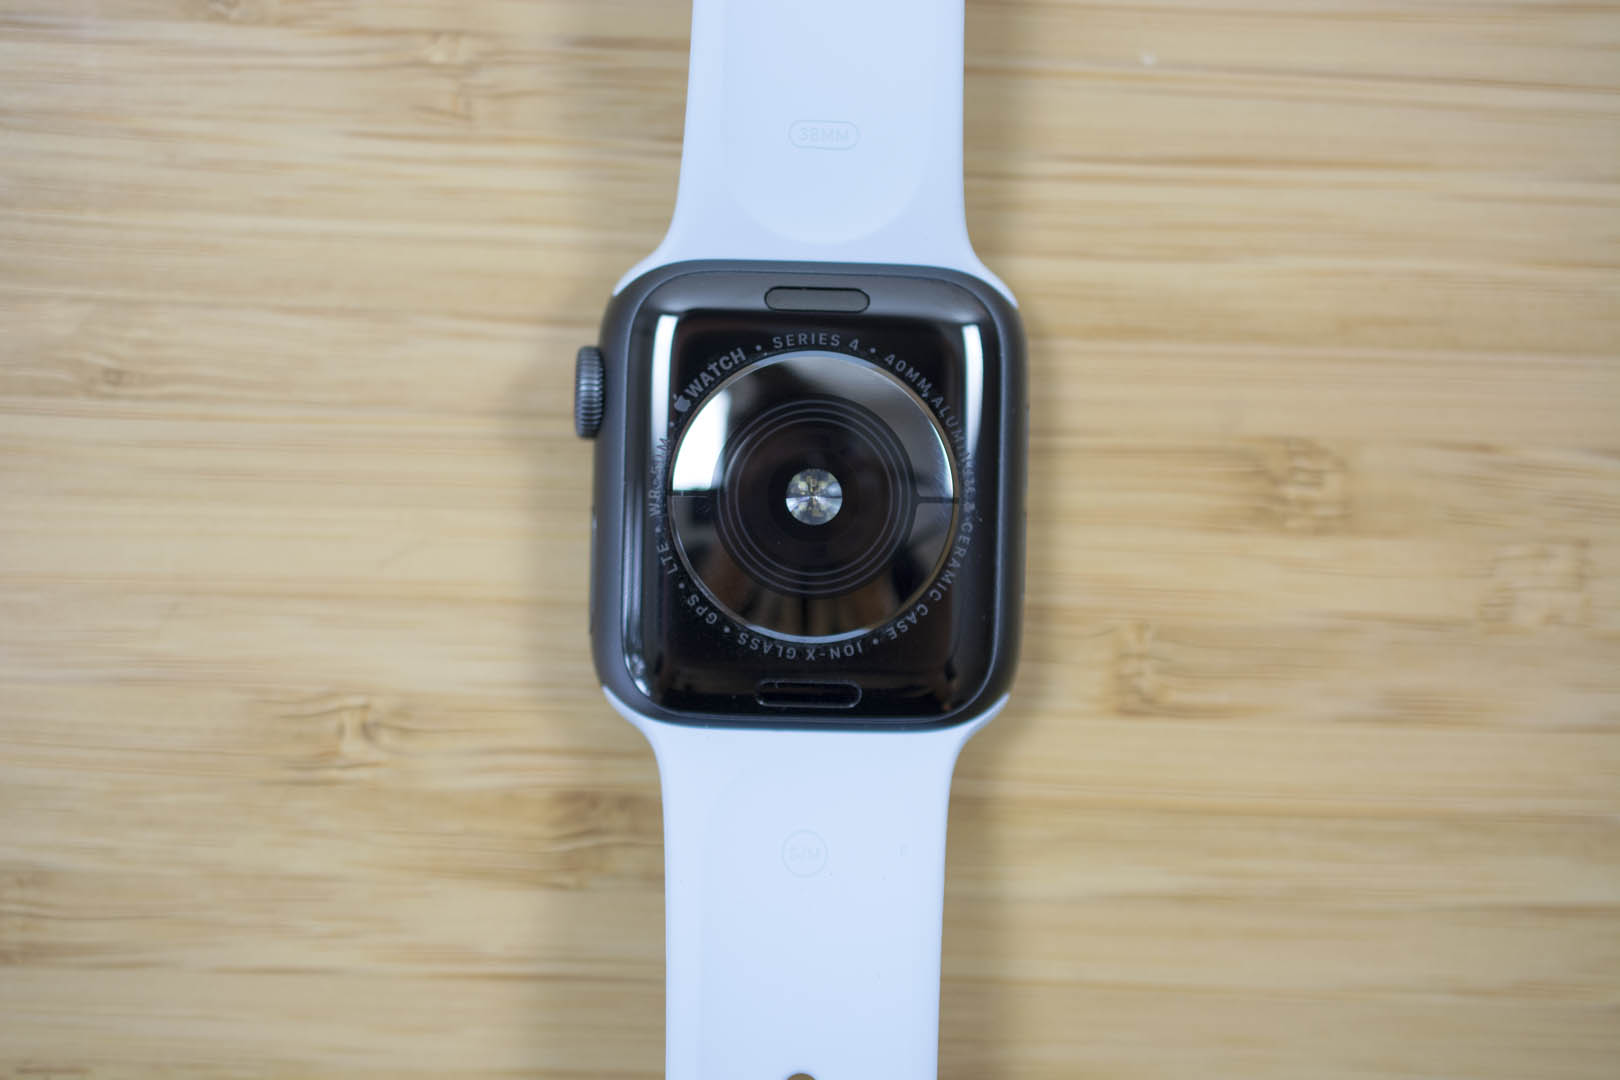 The underside of the Apple Watch Series 4 has an electrode circle for measuring ECG readings, in addition to the optical heart rate monitor.